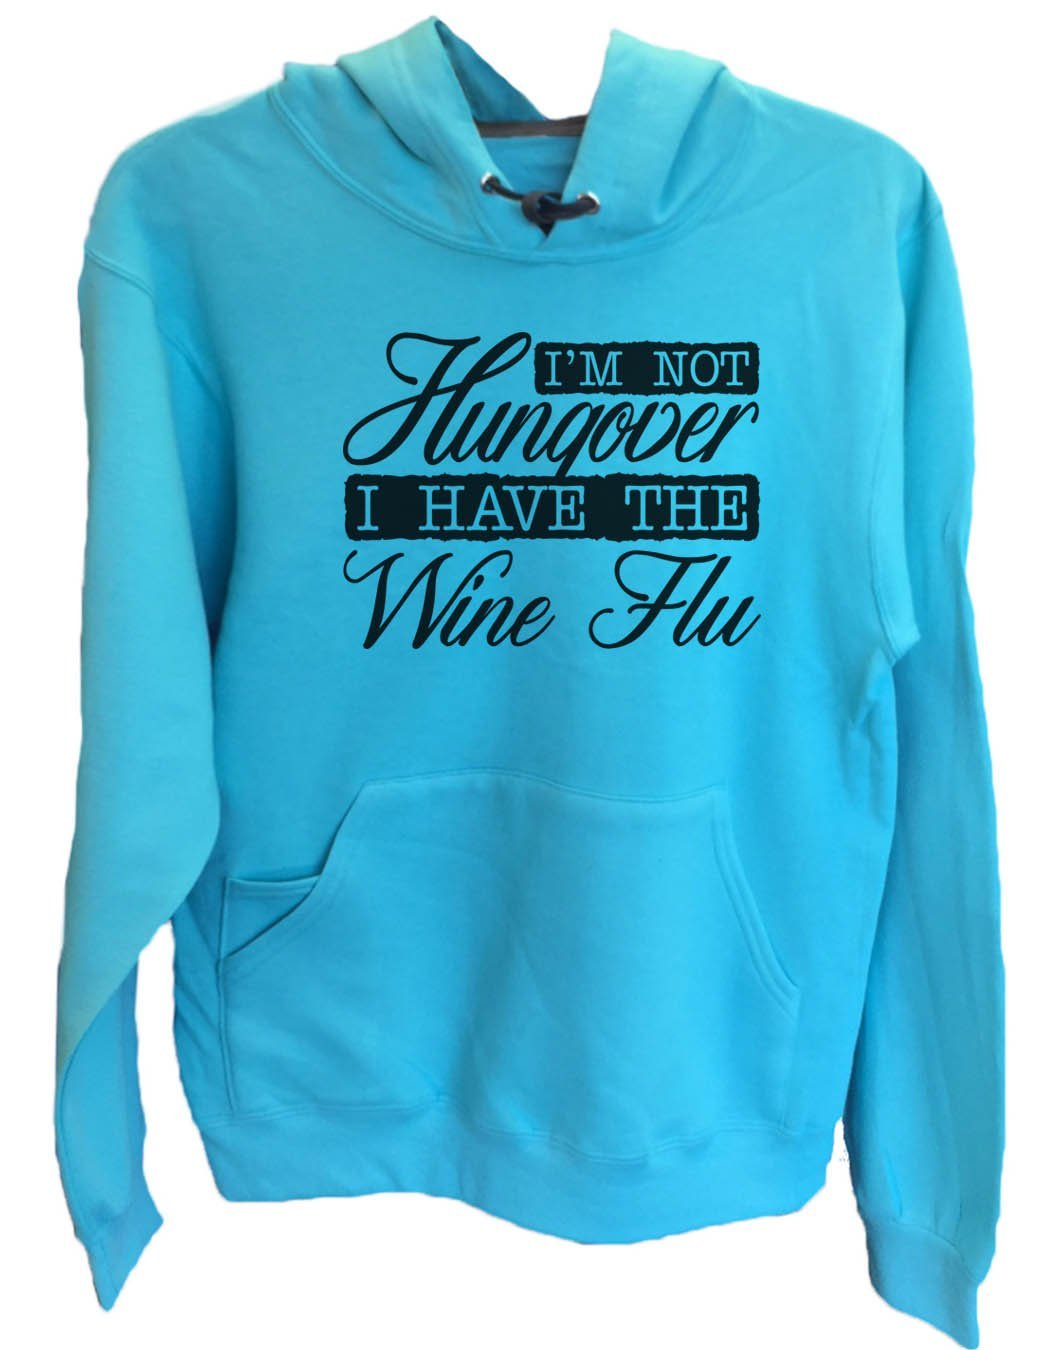 UNISEX HOODIE - I'm Not Hungover I Have The Wine Flu - FUNNY MENS AND WOMENS HOODED SWEATSHIRTS - 2139 Funny Shirt Small / Turquoise